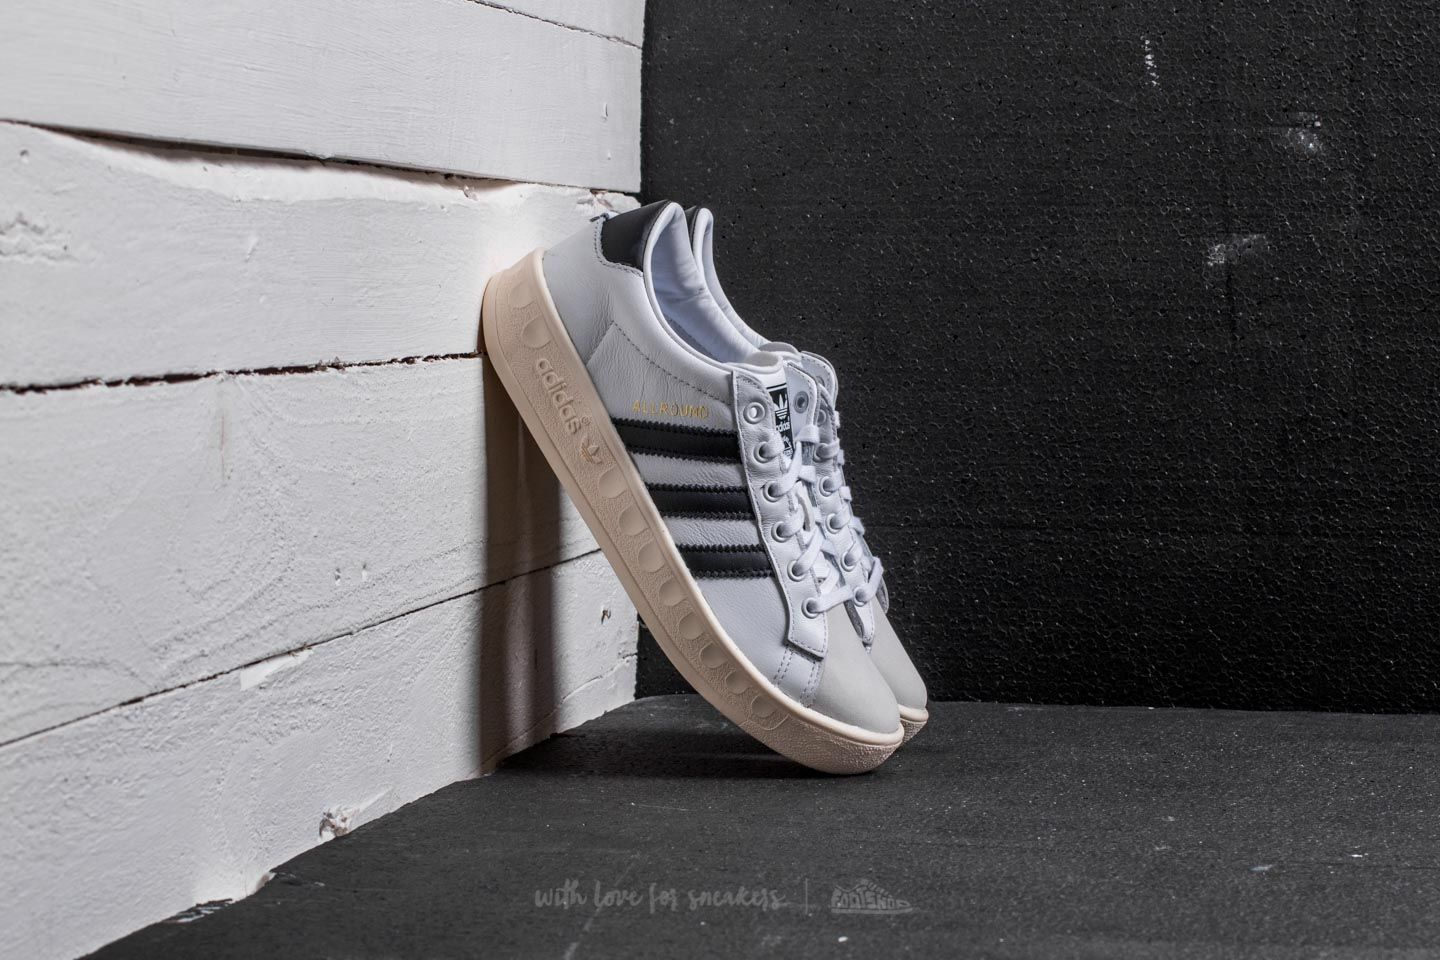 Core Allround Gold Adidas MetallicFootshop White Ftw Low Black yf7Yb6Igv